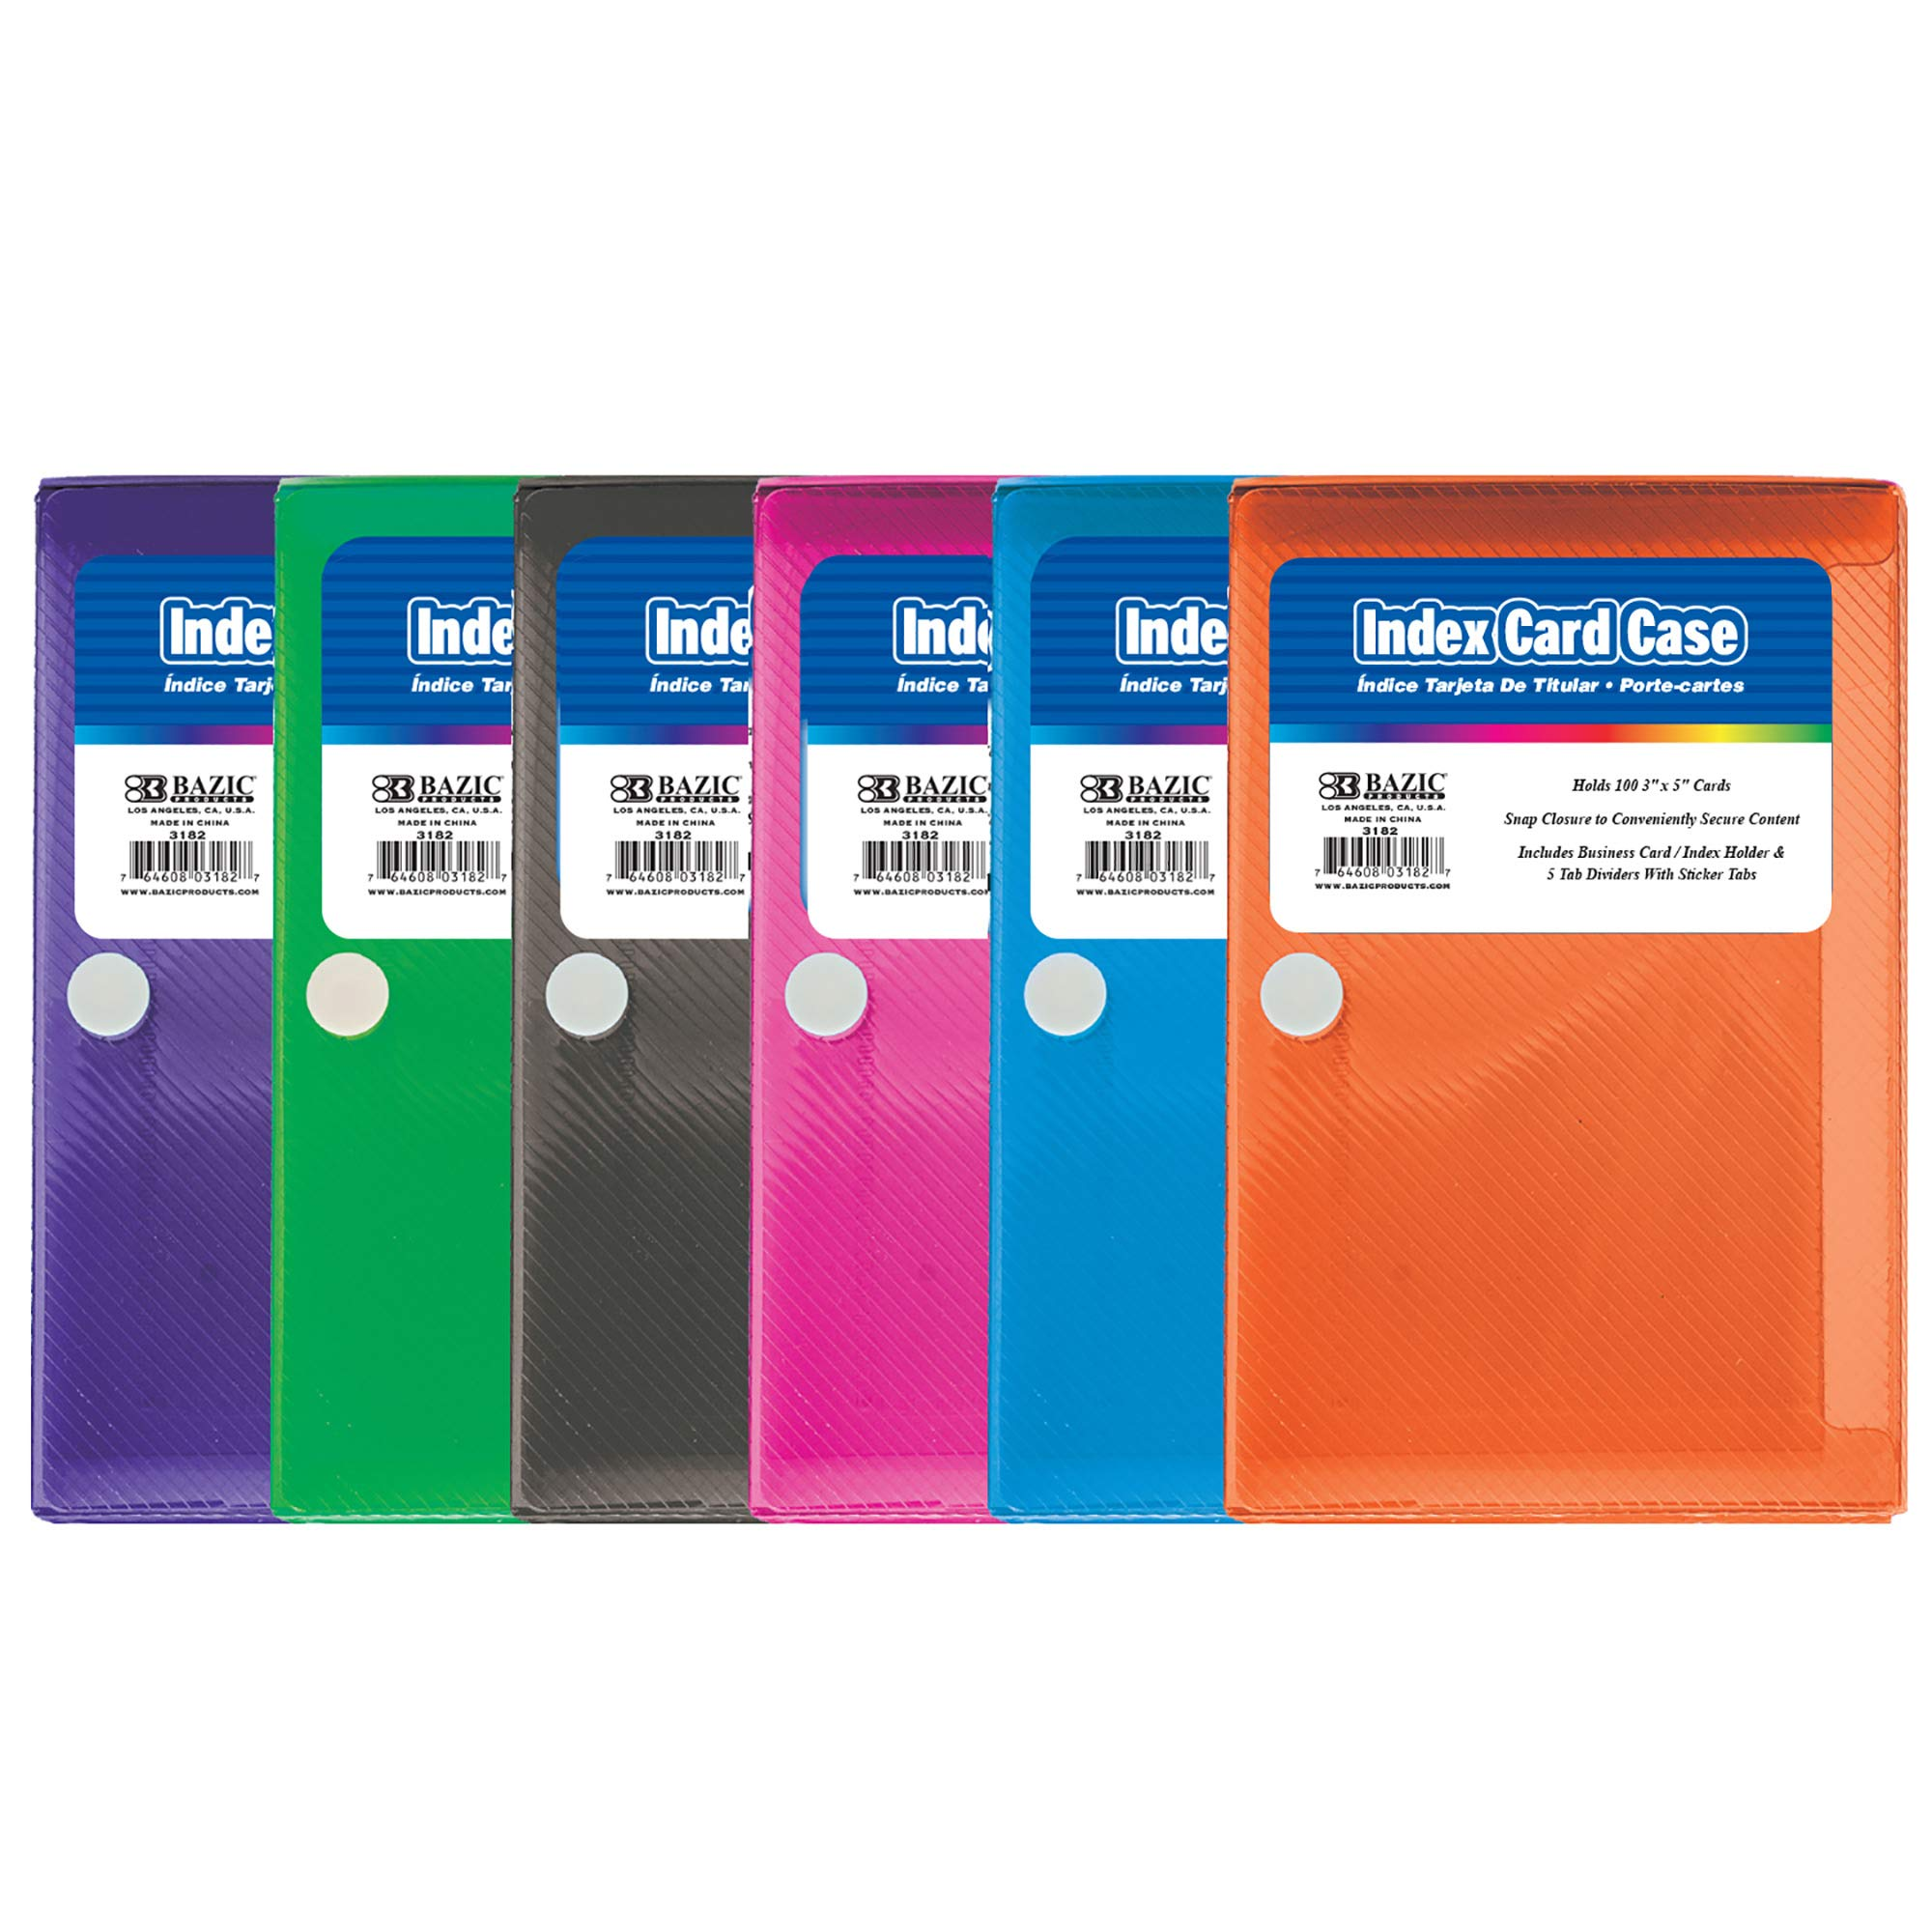 BAZIC 3'' X 5'' Index Card Case w/ 5-Tab Divider (Case of 36) by B BAZIC PRODUCTS